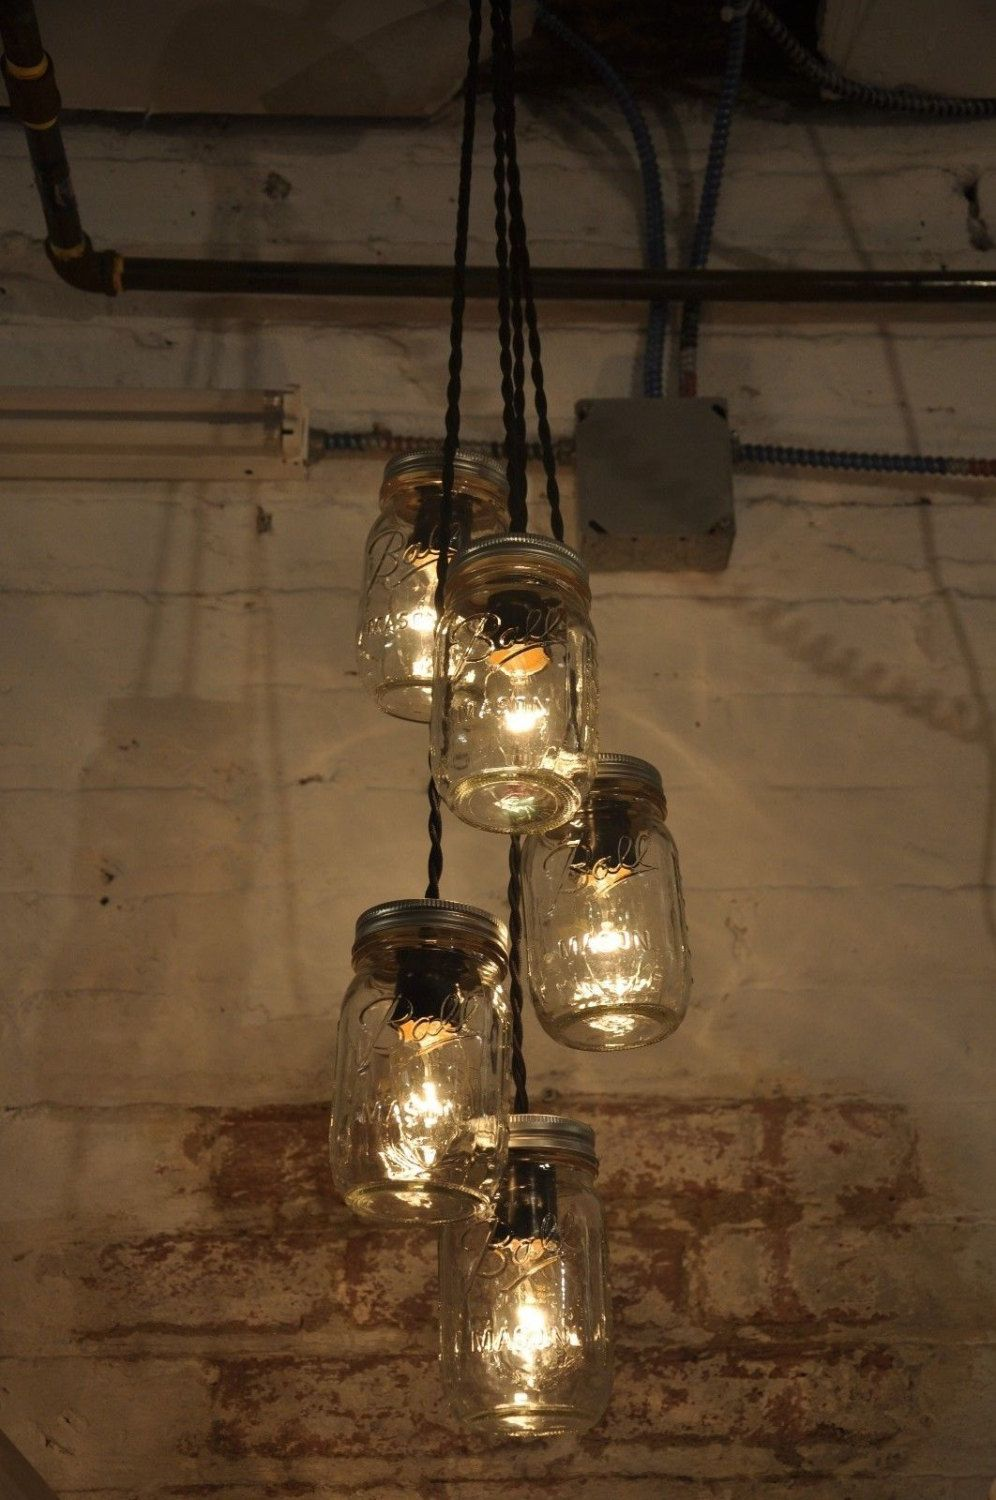 Mason jar chandelier 5 jar pendant light fixture hanging light mason jar chandelier 5 jar pendant light fixture hanging light jar cluster retro style lamp cloth covered wire vintage style cord aloadofball Choice Image